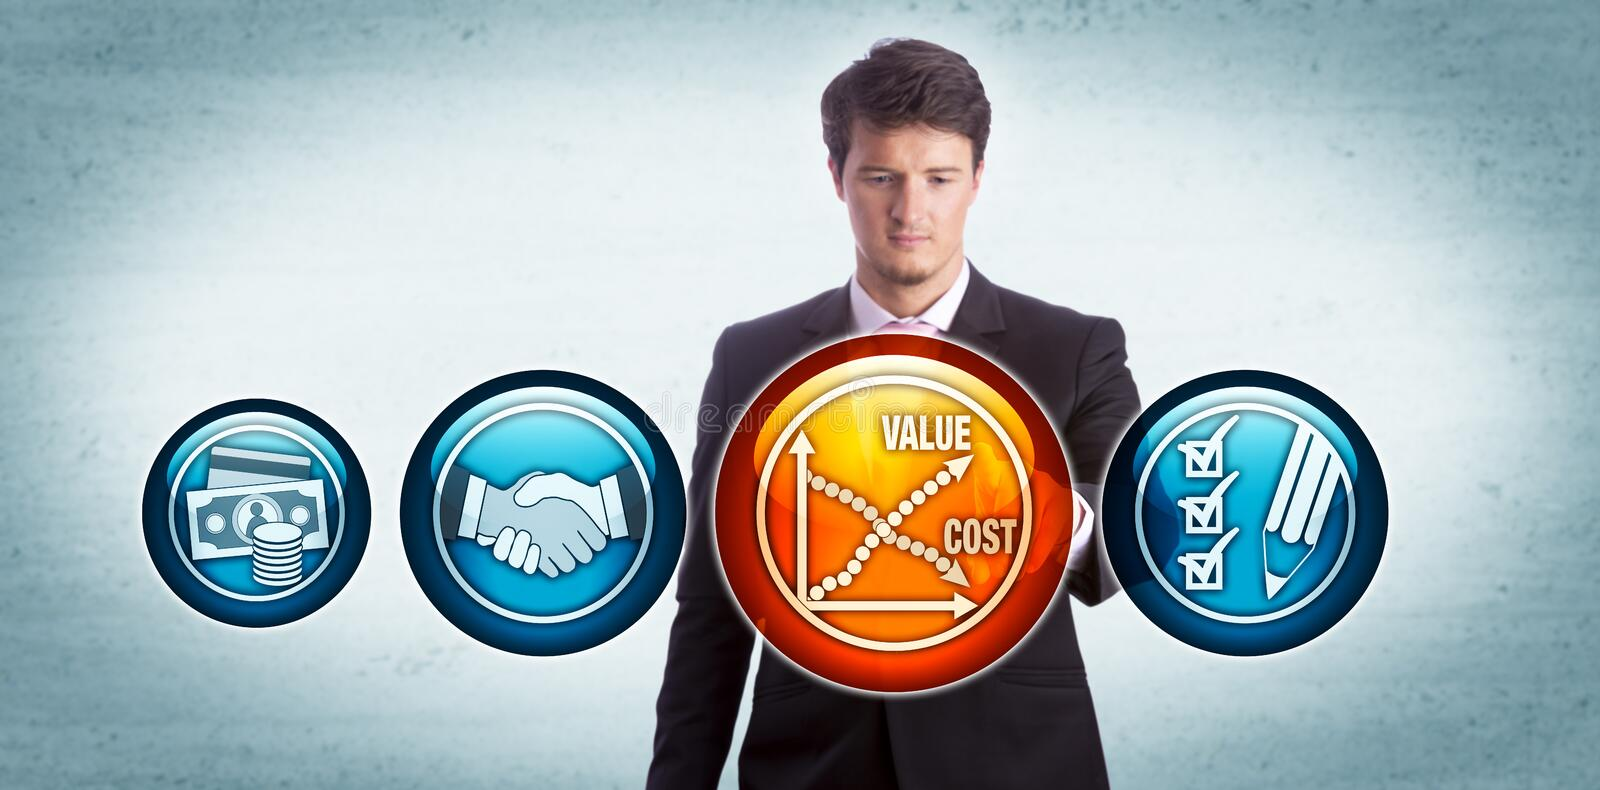 Young Man Evaluating Value Versus Cost Of A Deal. Young businessman evaluating cost-effectiveness of a deal by touching a chart icon depicting rise of value royalty free stock image